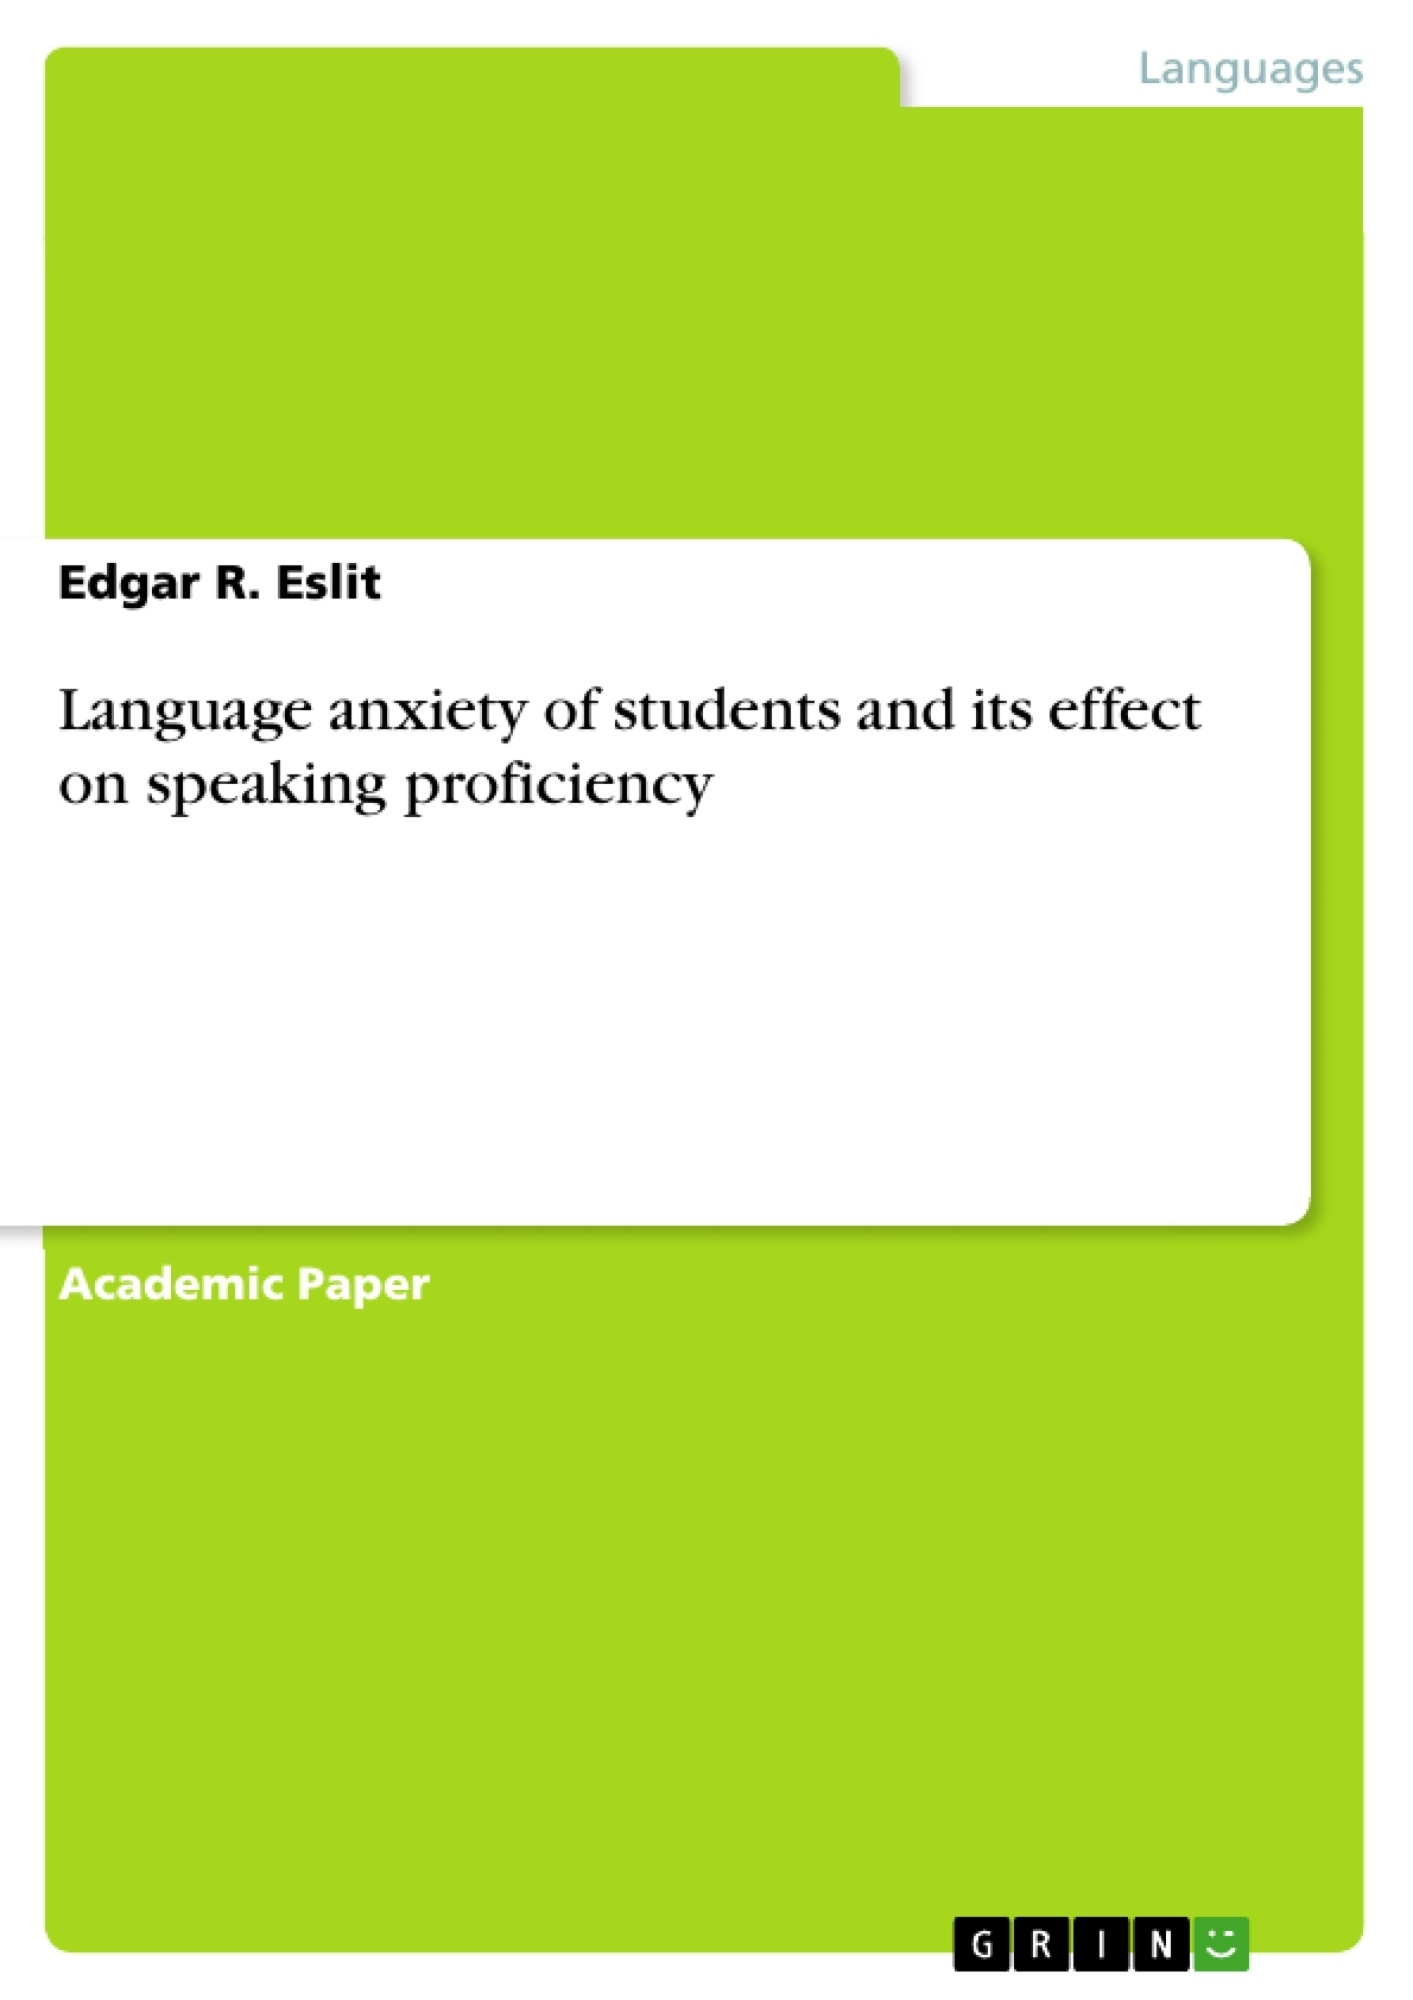 Title: Language anxiety of students and its effect on speaking proficiency